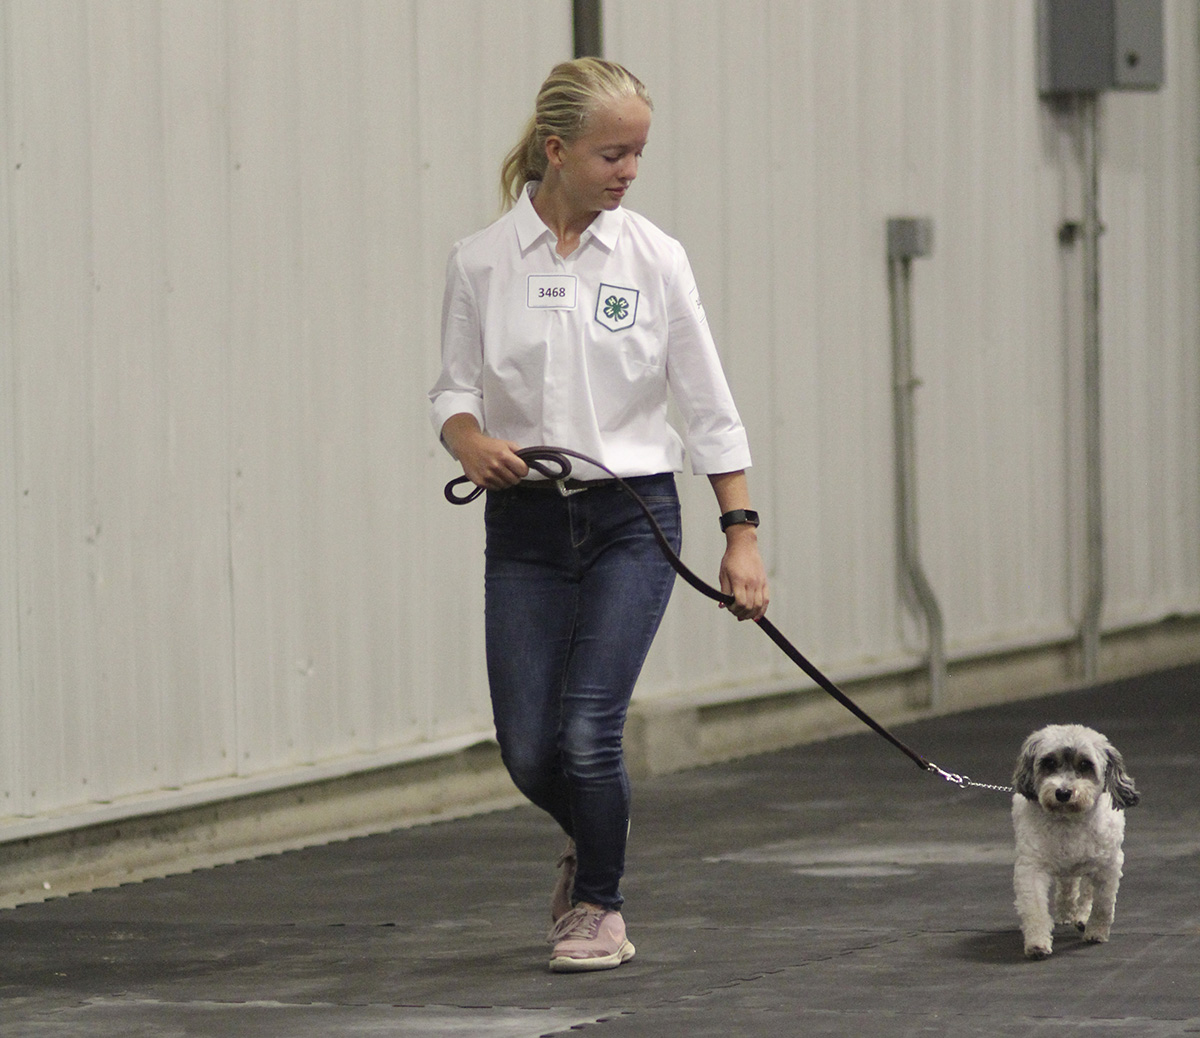 Dog Obedience at the 2019 Lancaster County Super Fair